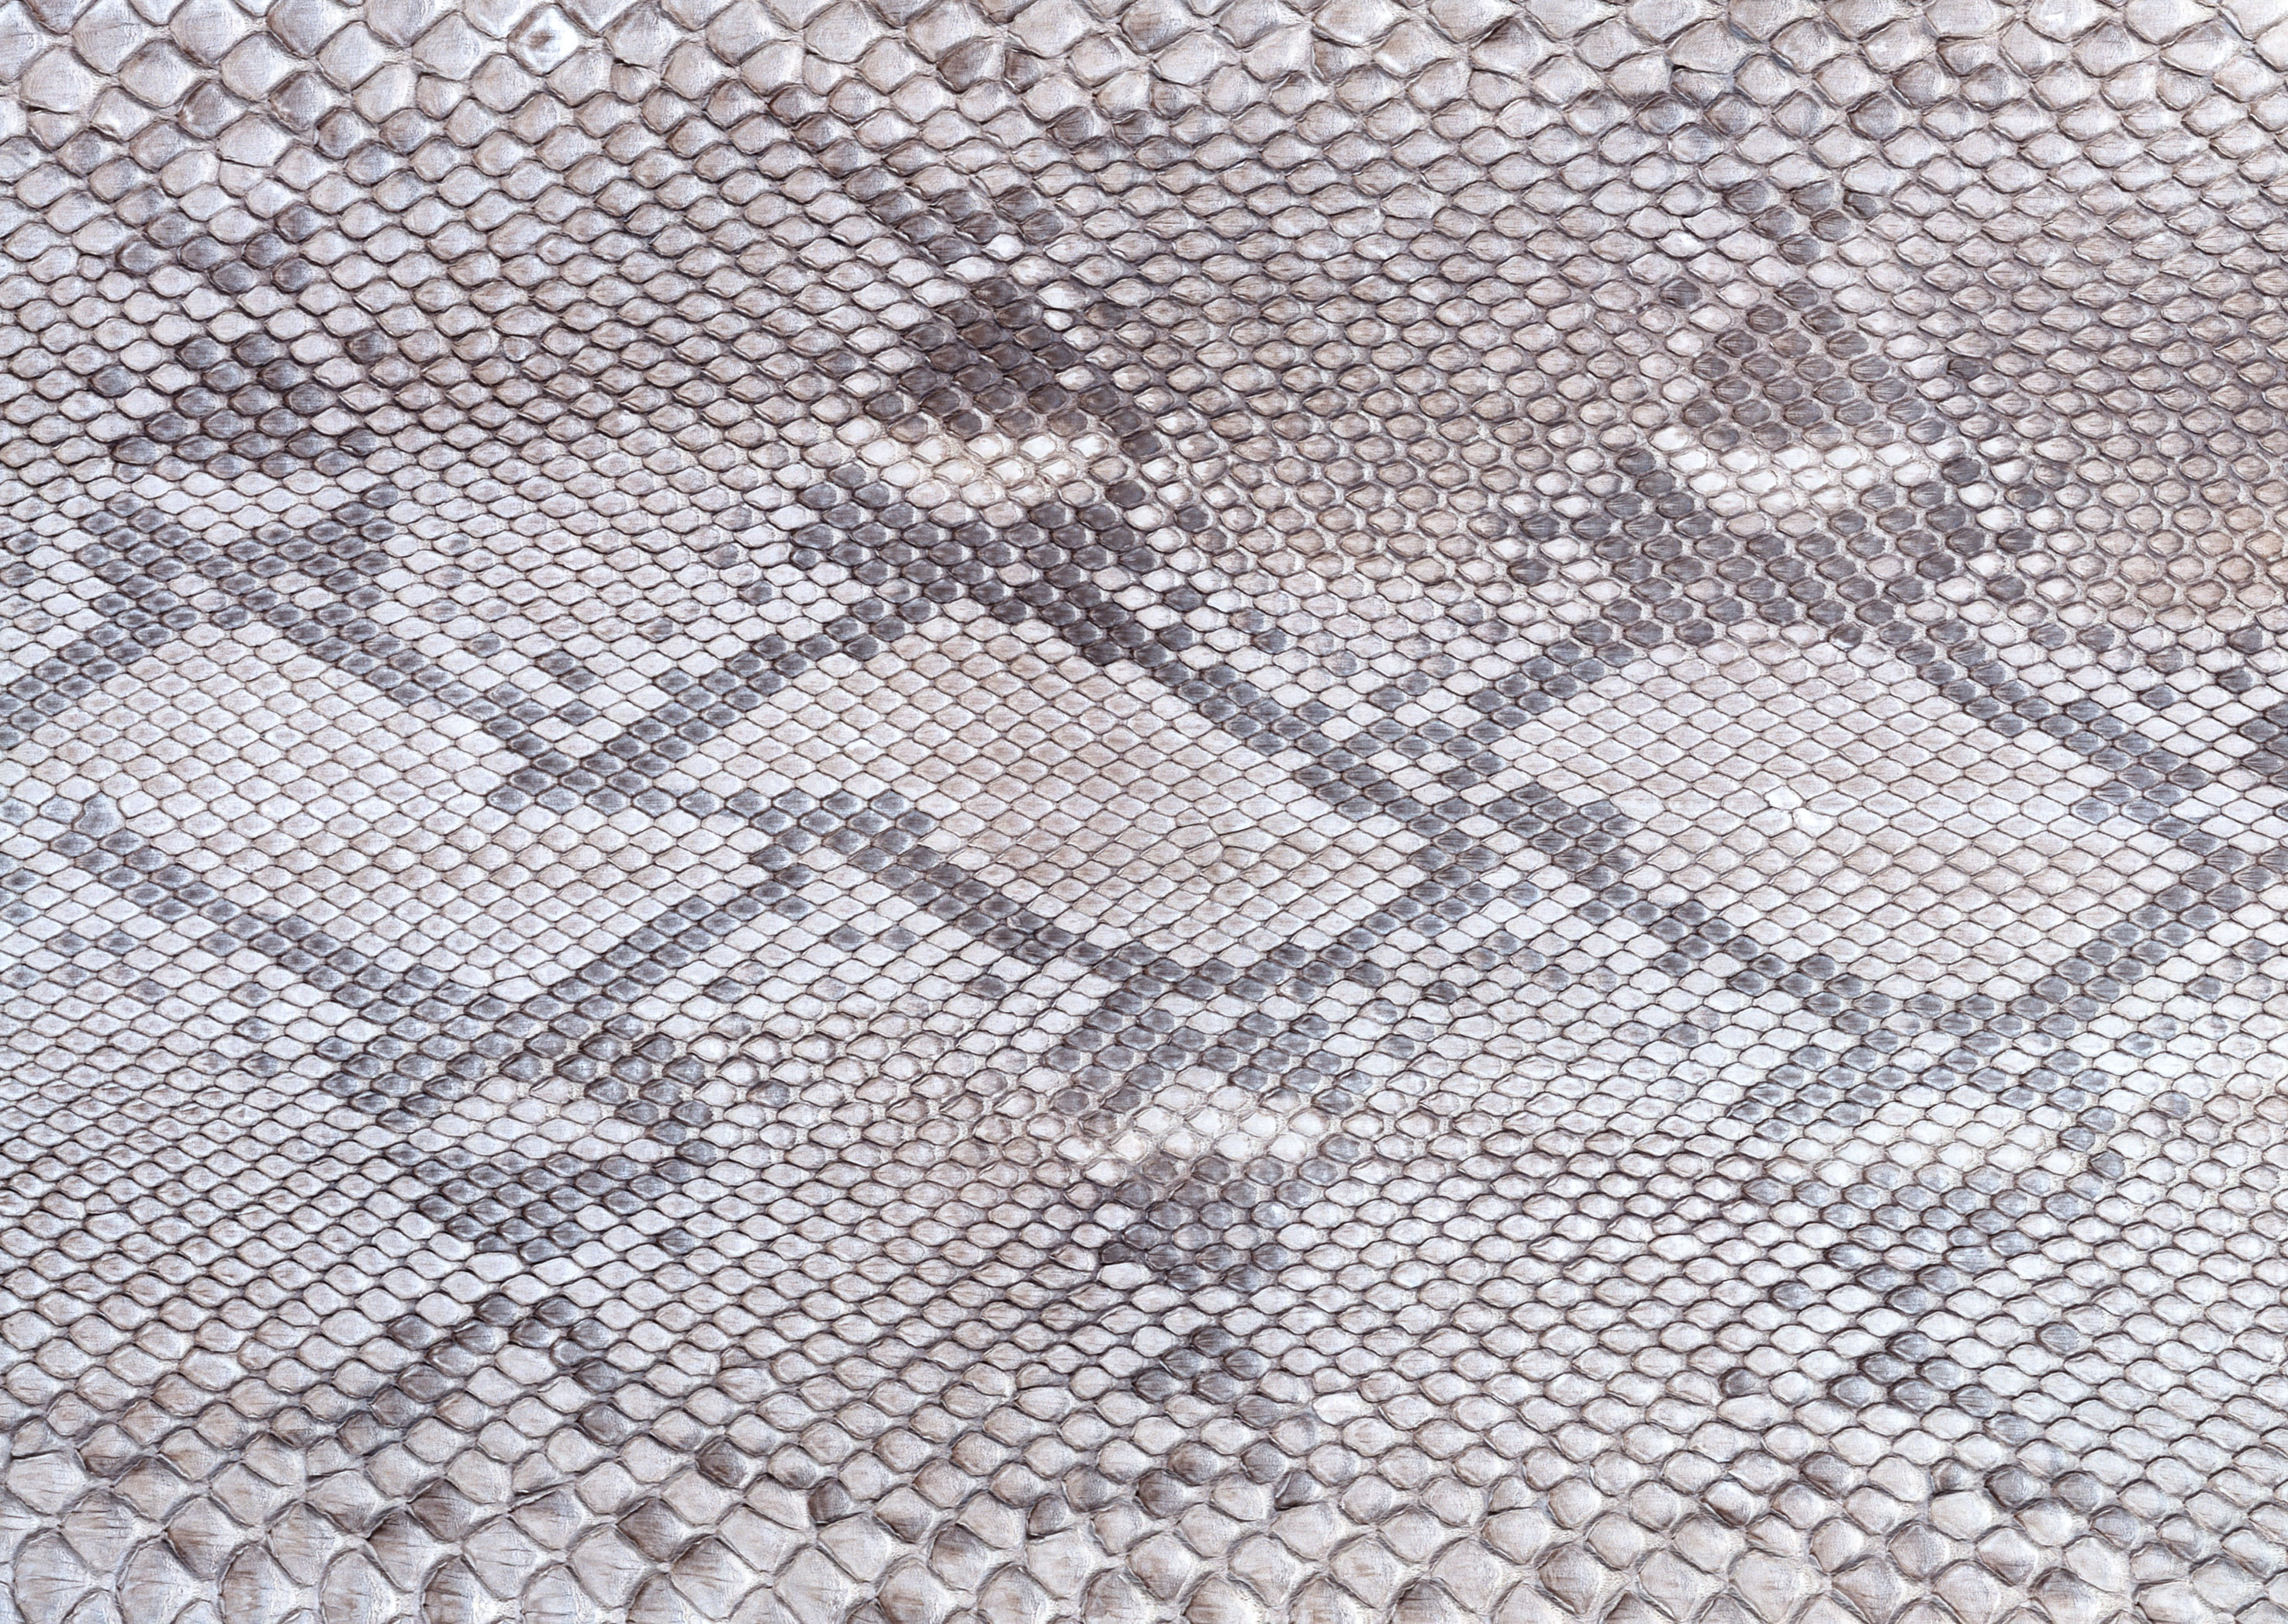 Gray snake leather texture background image download, snakes